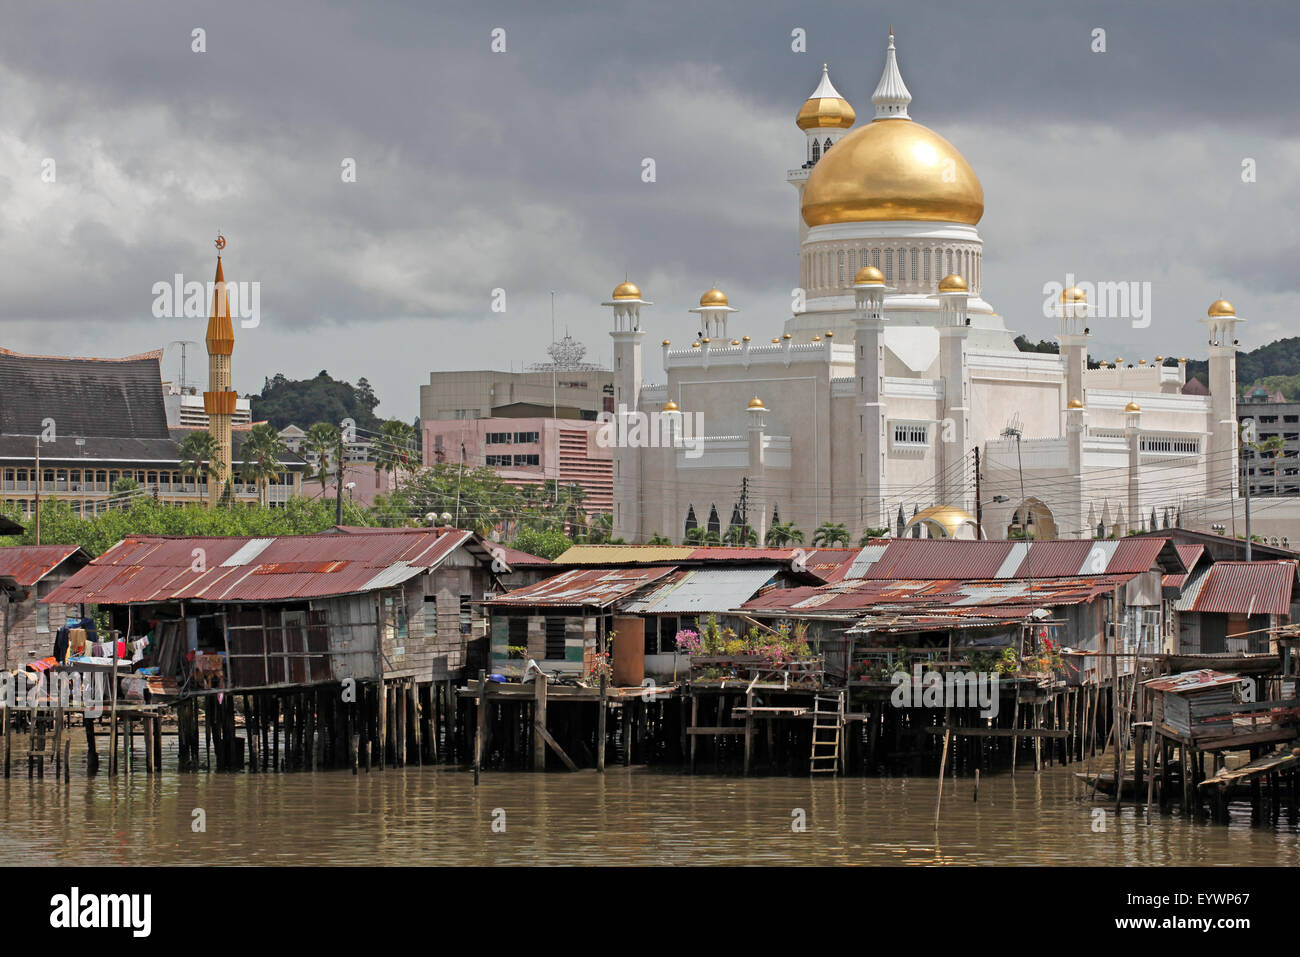 Boats and water village with Omar Ali Saifuddien mosque in Bandar Seri Begawan, Brunei, Southeast Asia, Asia - Stock Image